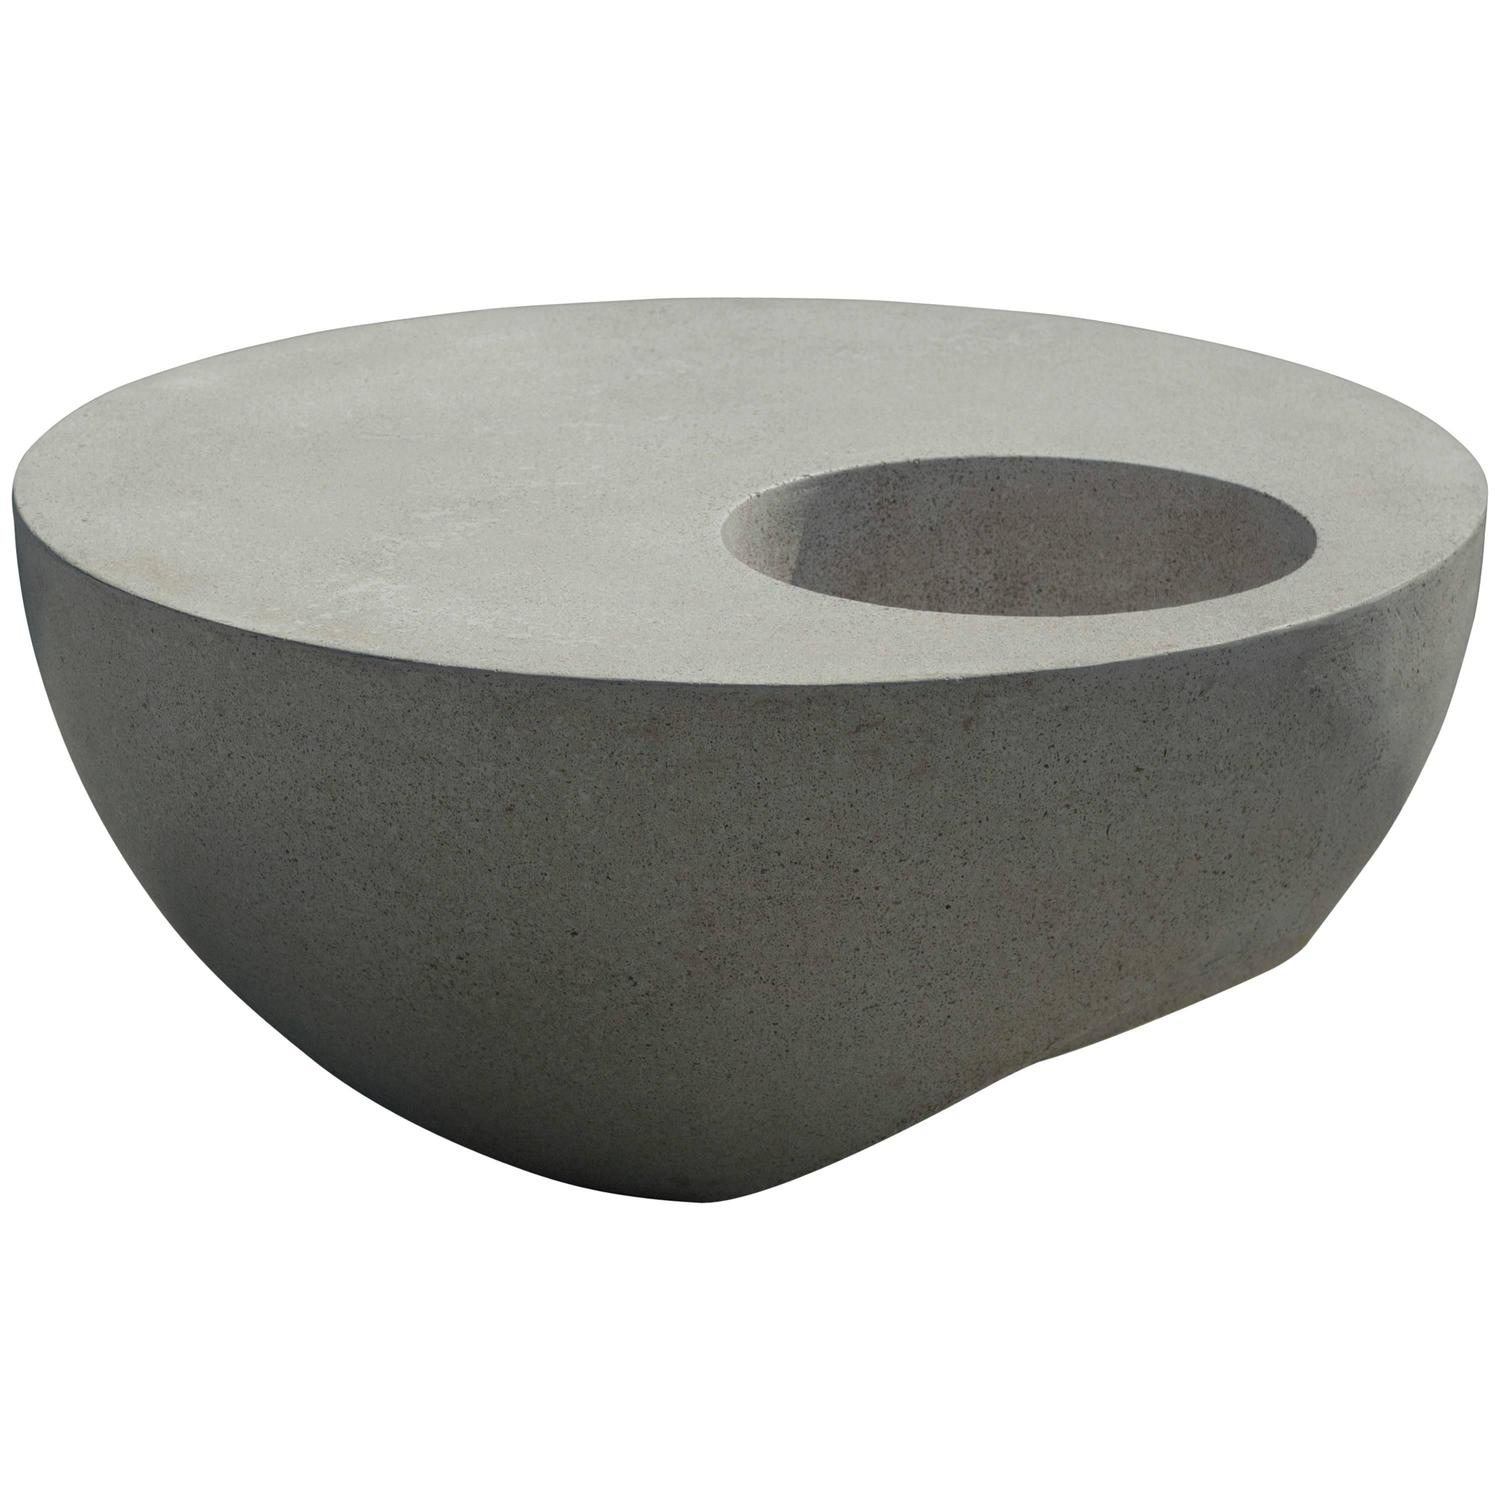 Hemisphere Sculptural Object Seat By May Furniture Outdoor For Sale At 1stdibs